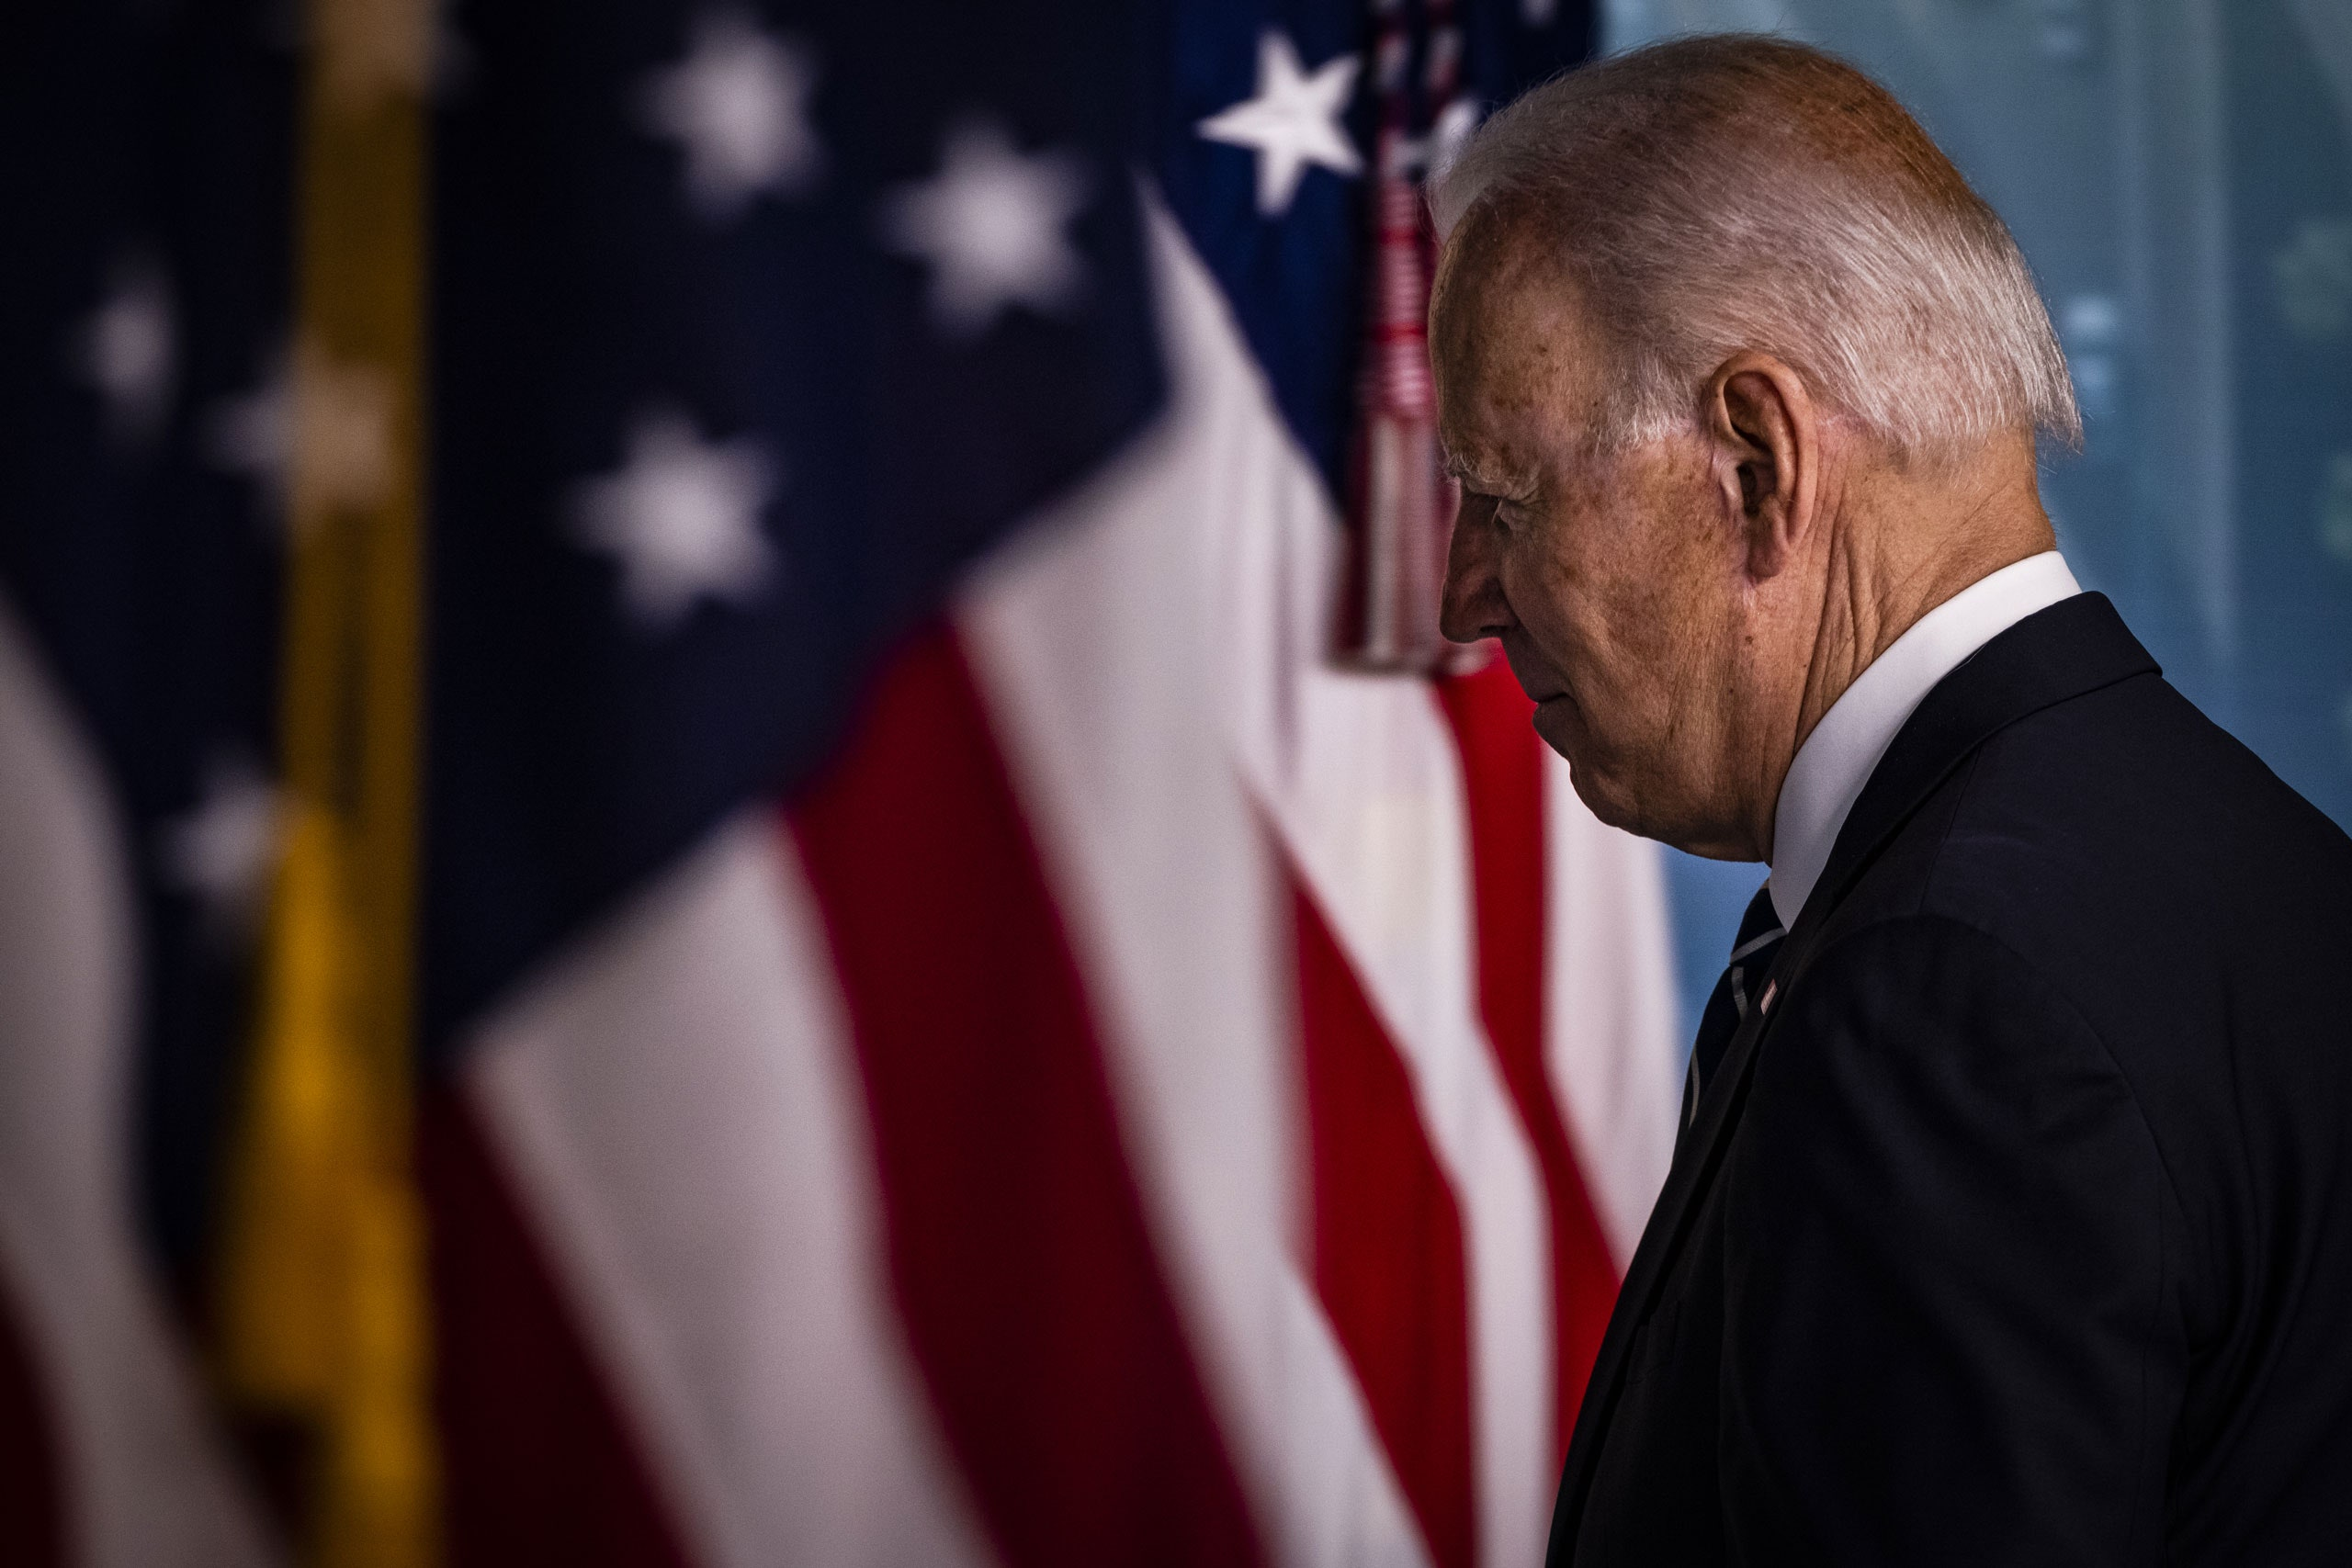 Biden Signals Big Changes to Legal Immigration and Asylum Law with Spring Regulatory Agenda